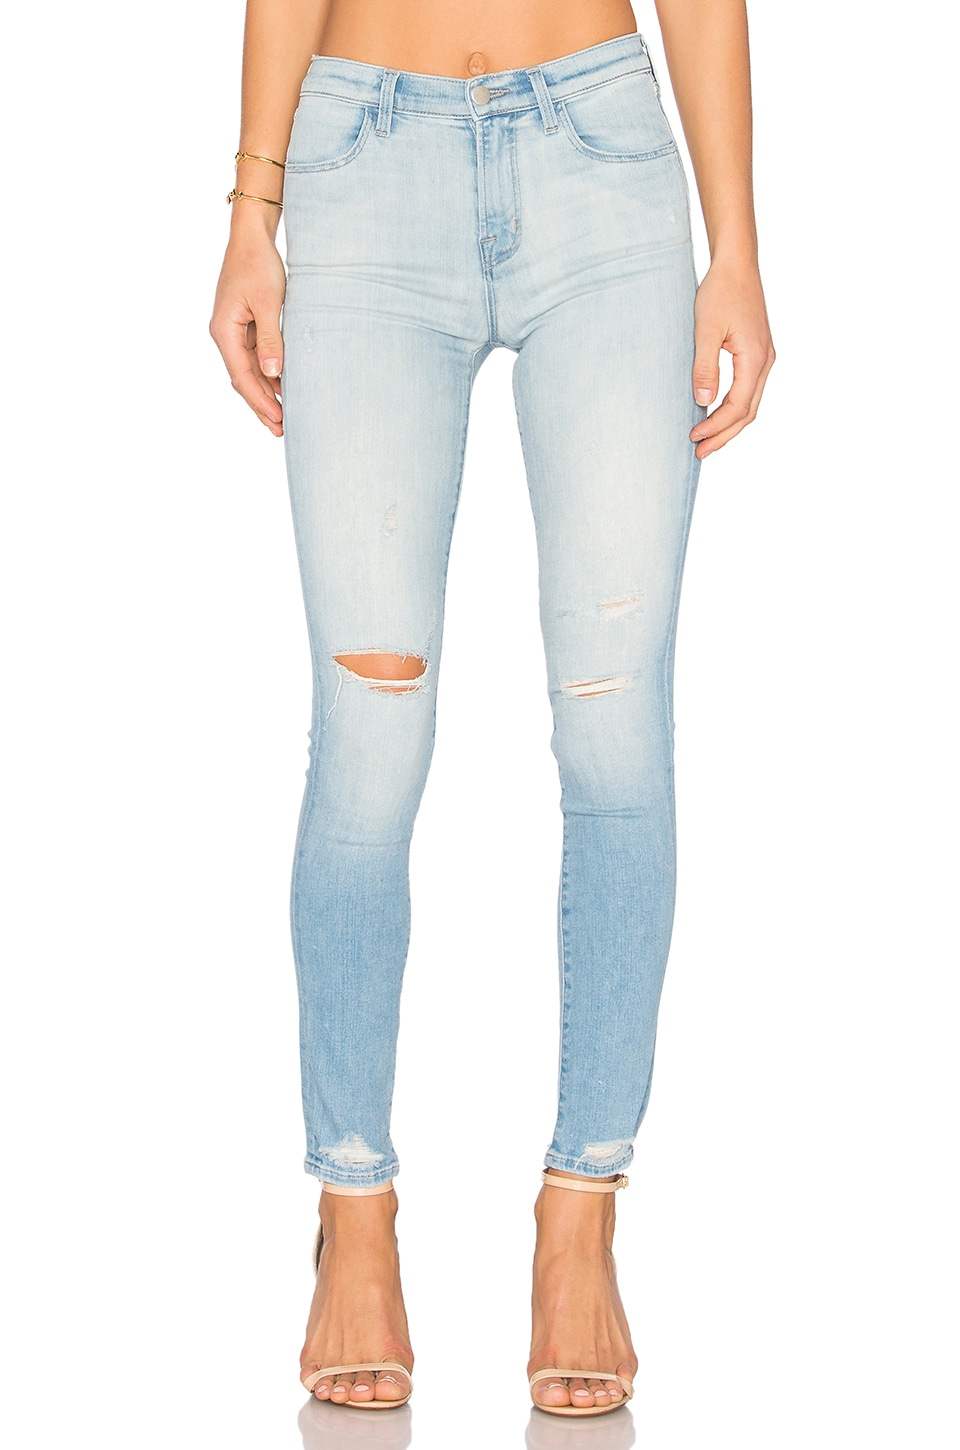 J Brand Maria High Rise Skinny in Superstar Destructed